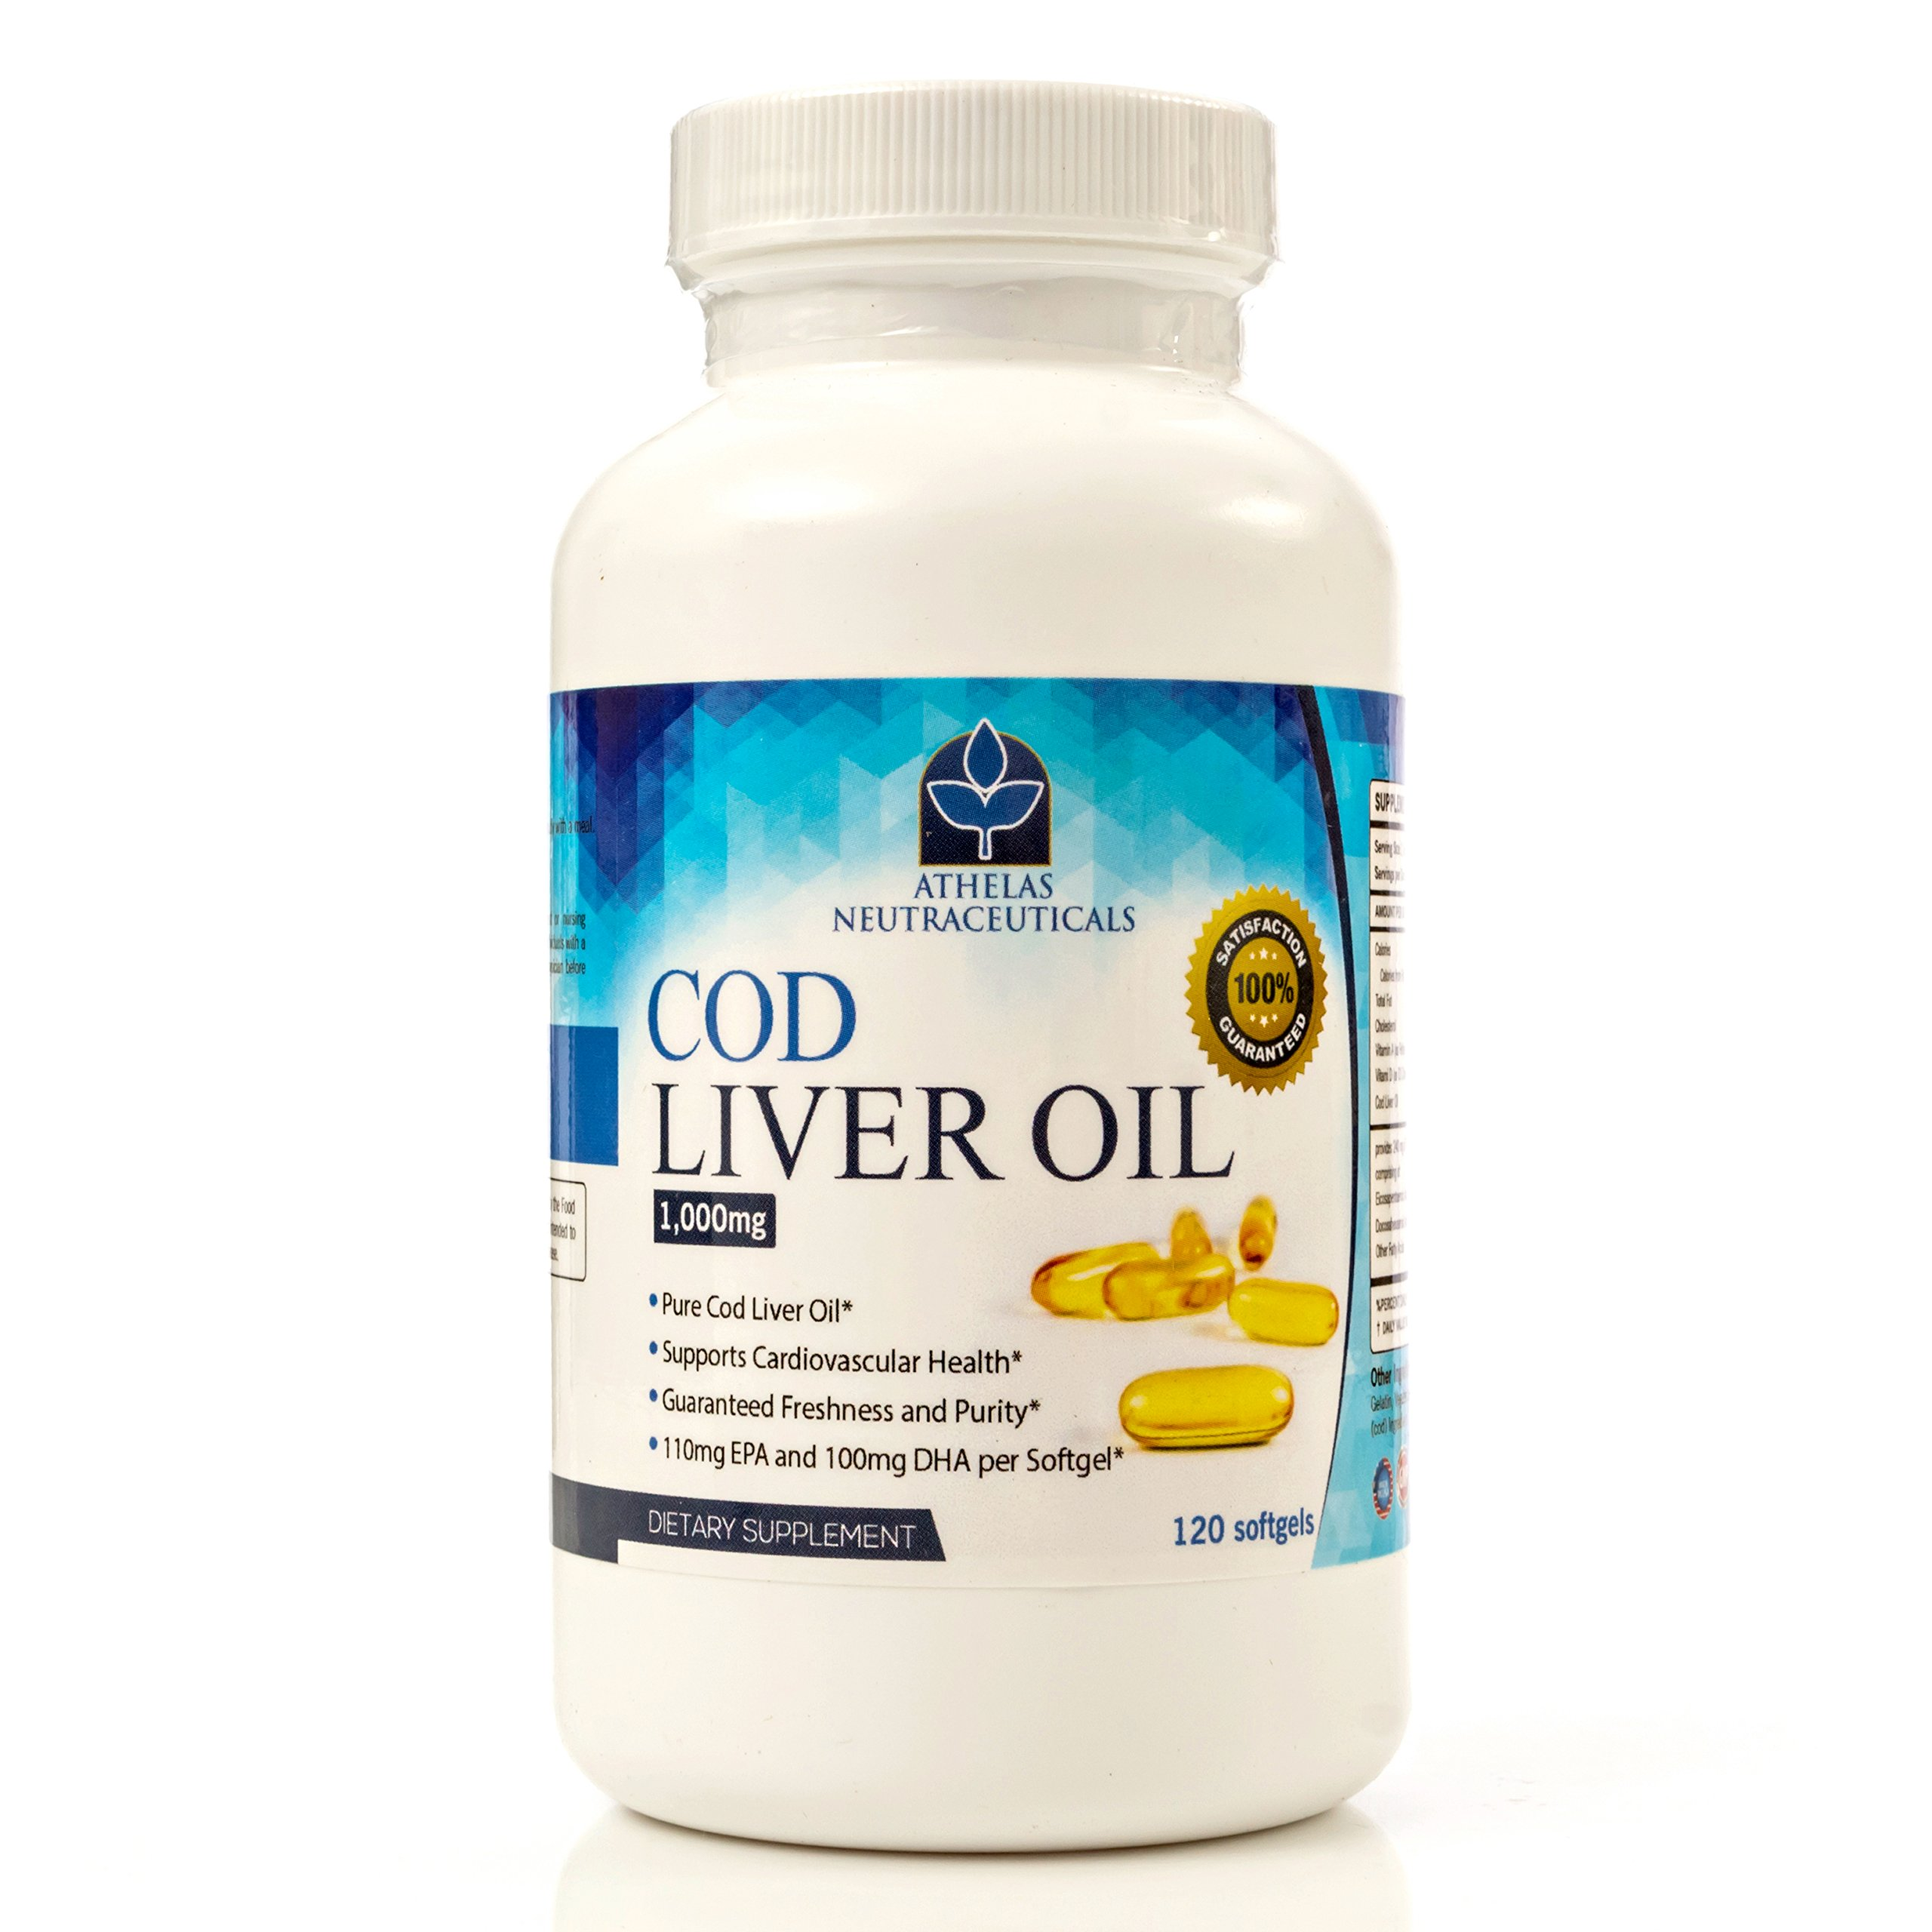 Cod Liver Oil Capsules - Premium Certified Pure and Fresh - Triple Strength - Heart Healthy - 120 Softgels - Natural Supplement - 240mg of Omega 3 Fatty Acids - No Fishy Taste!